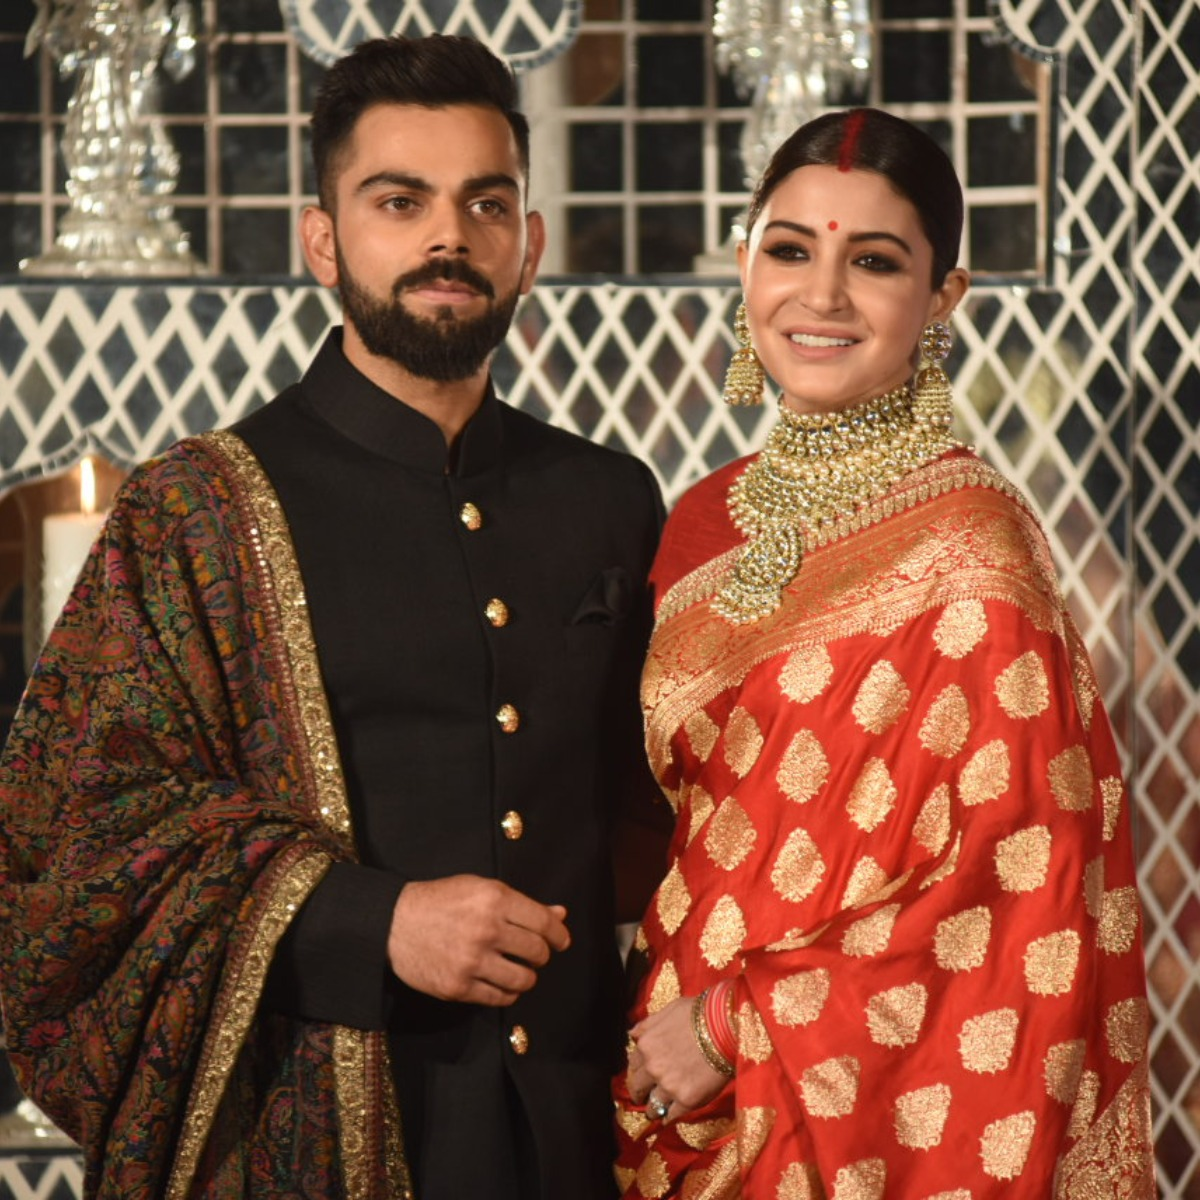 Anushka Sharma and Virat Kohli request paparazzi not to carry content related to their child